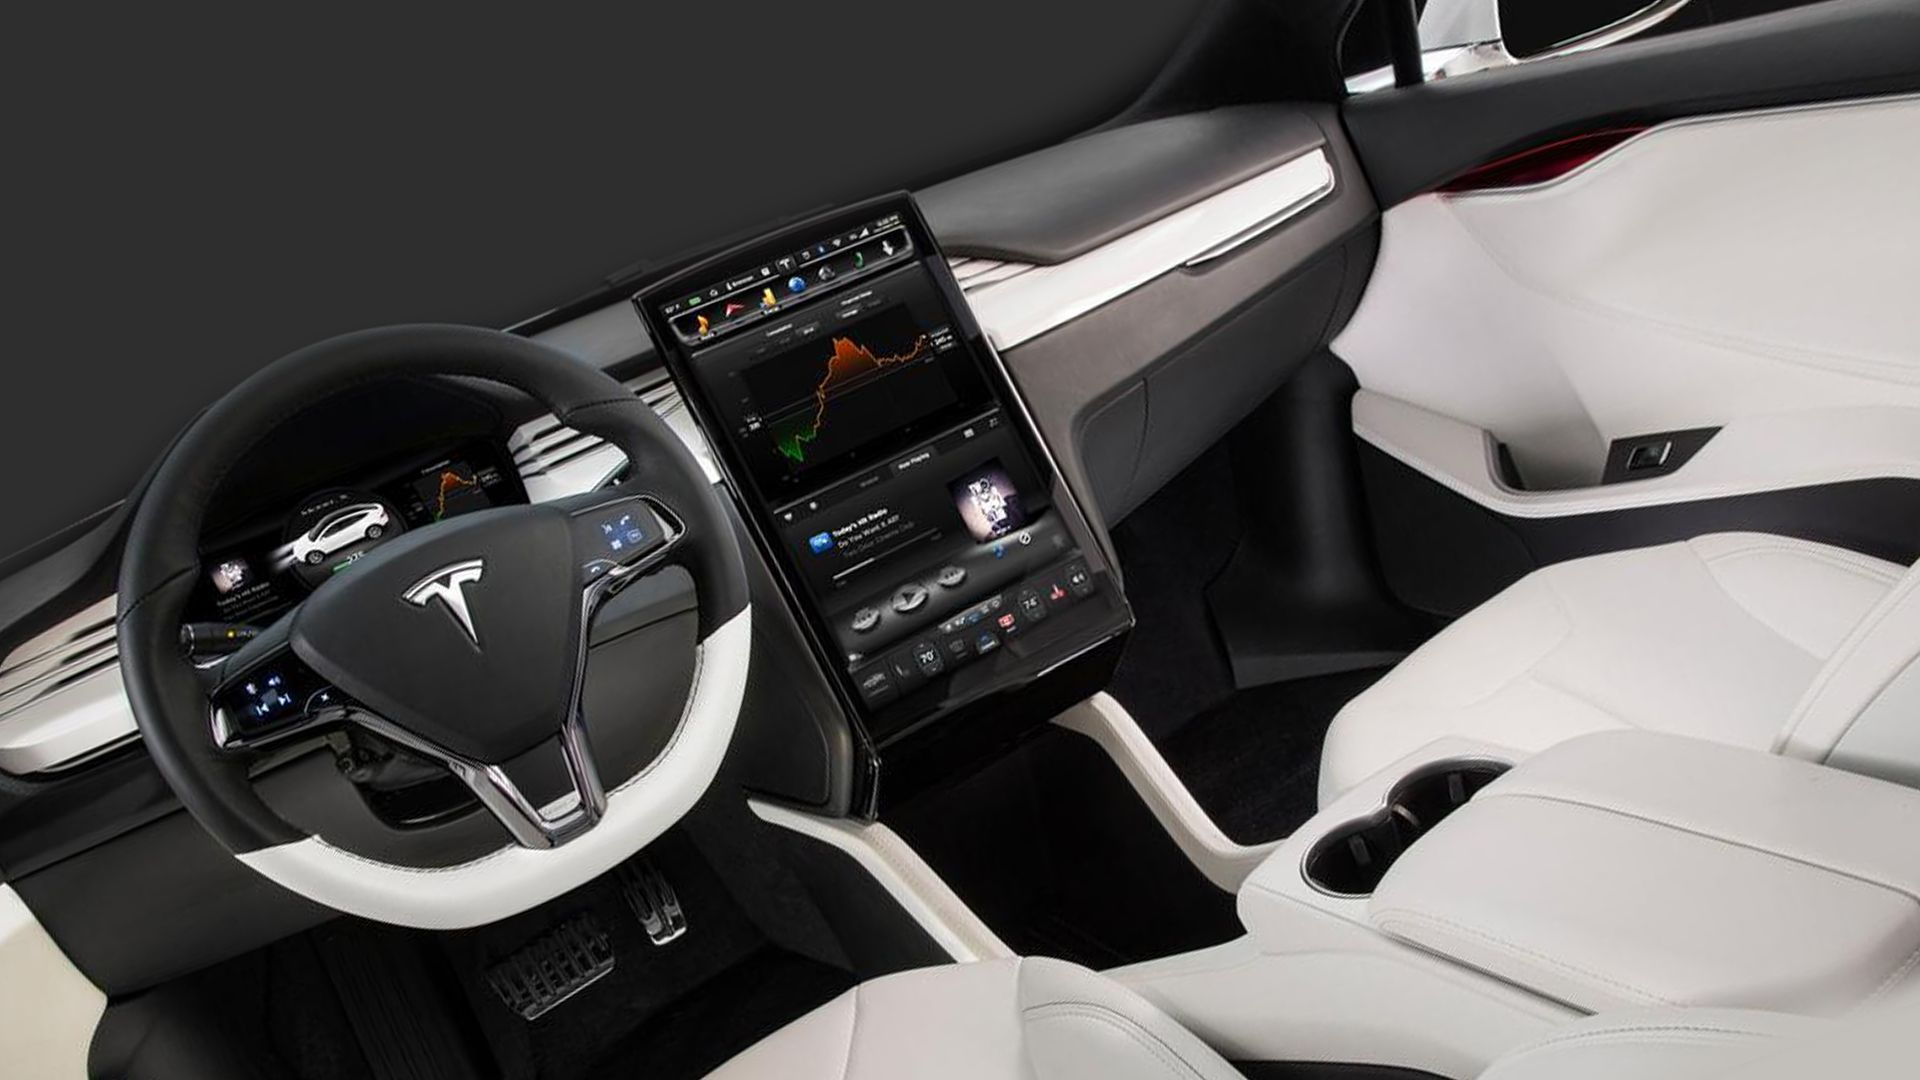 New 2018 Tesla Model X Interior Design | Good Cars 2018-2019 Model ...